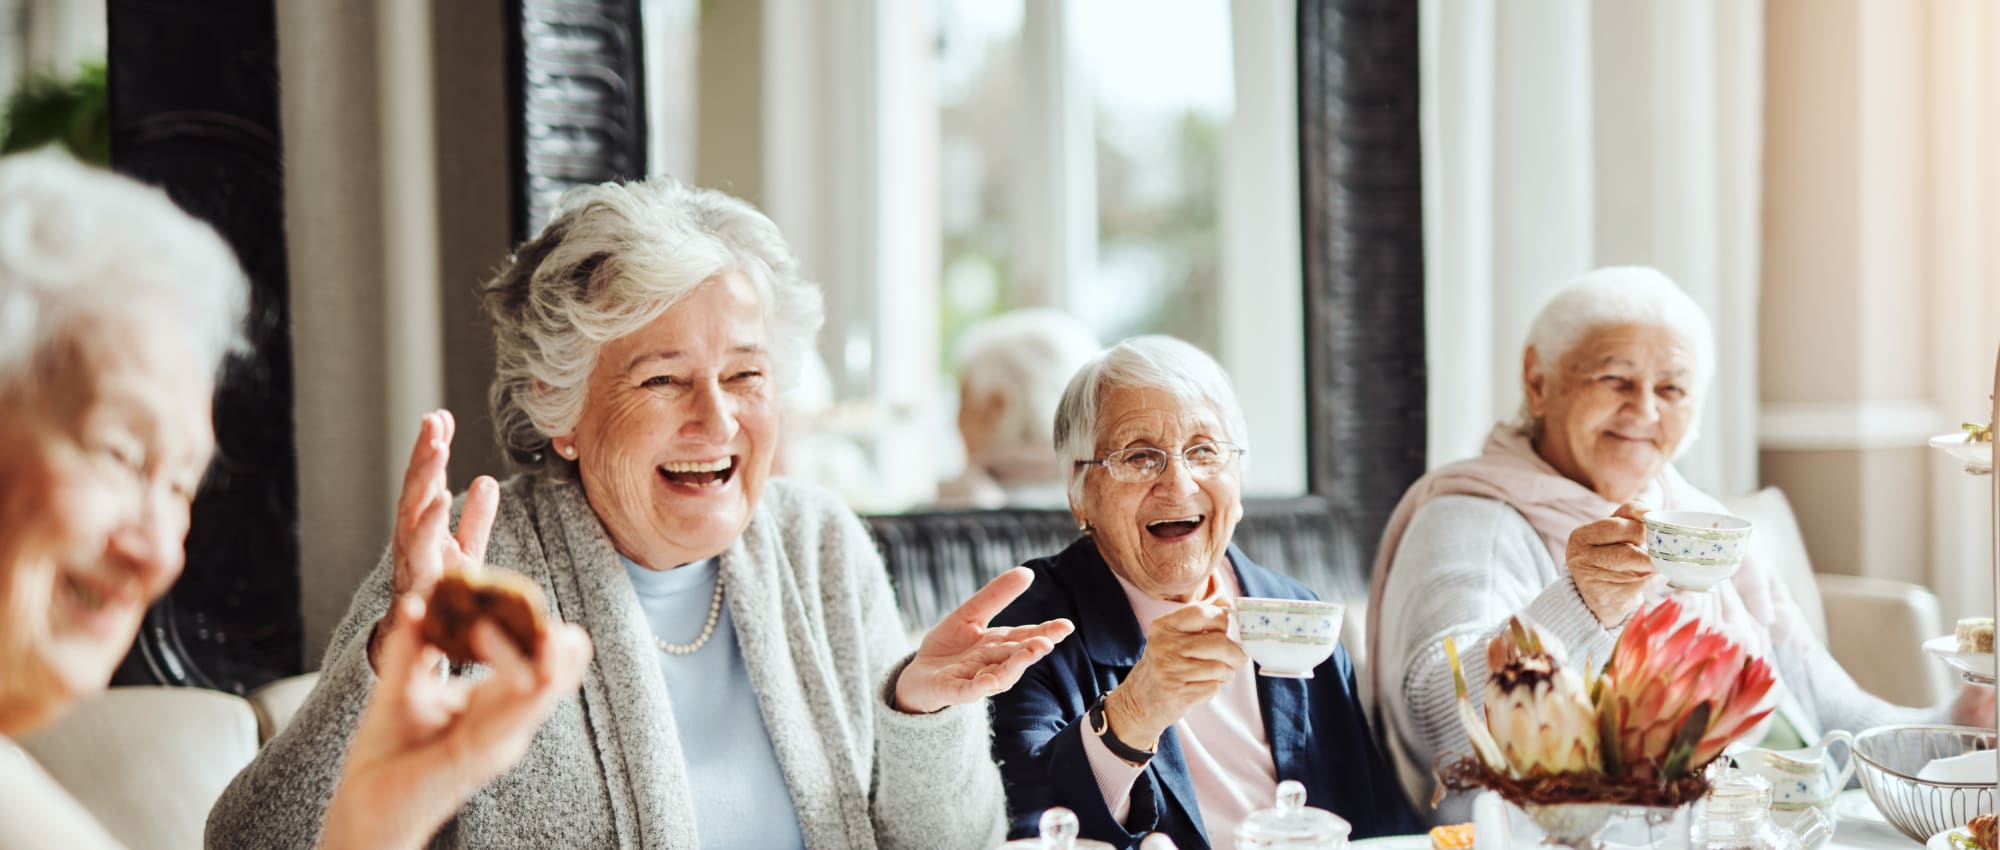 Services and amenities at Milestone Senior Living in Rhinelander, Wisconsin.